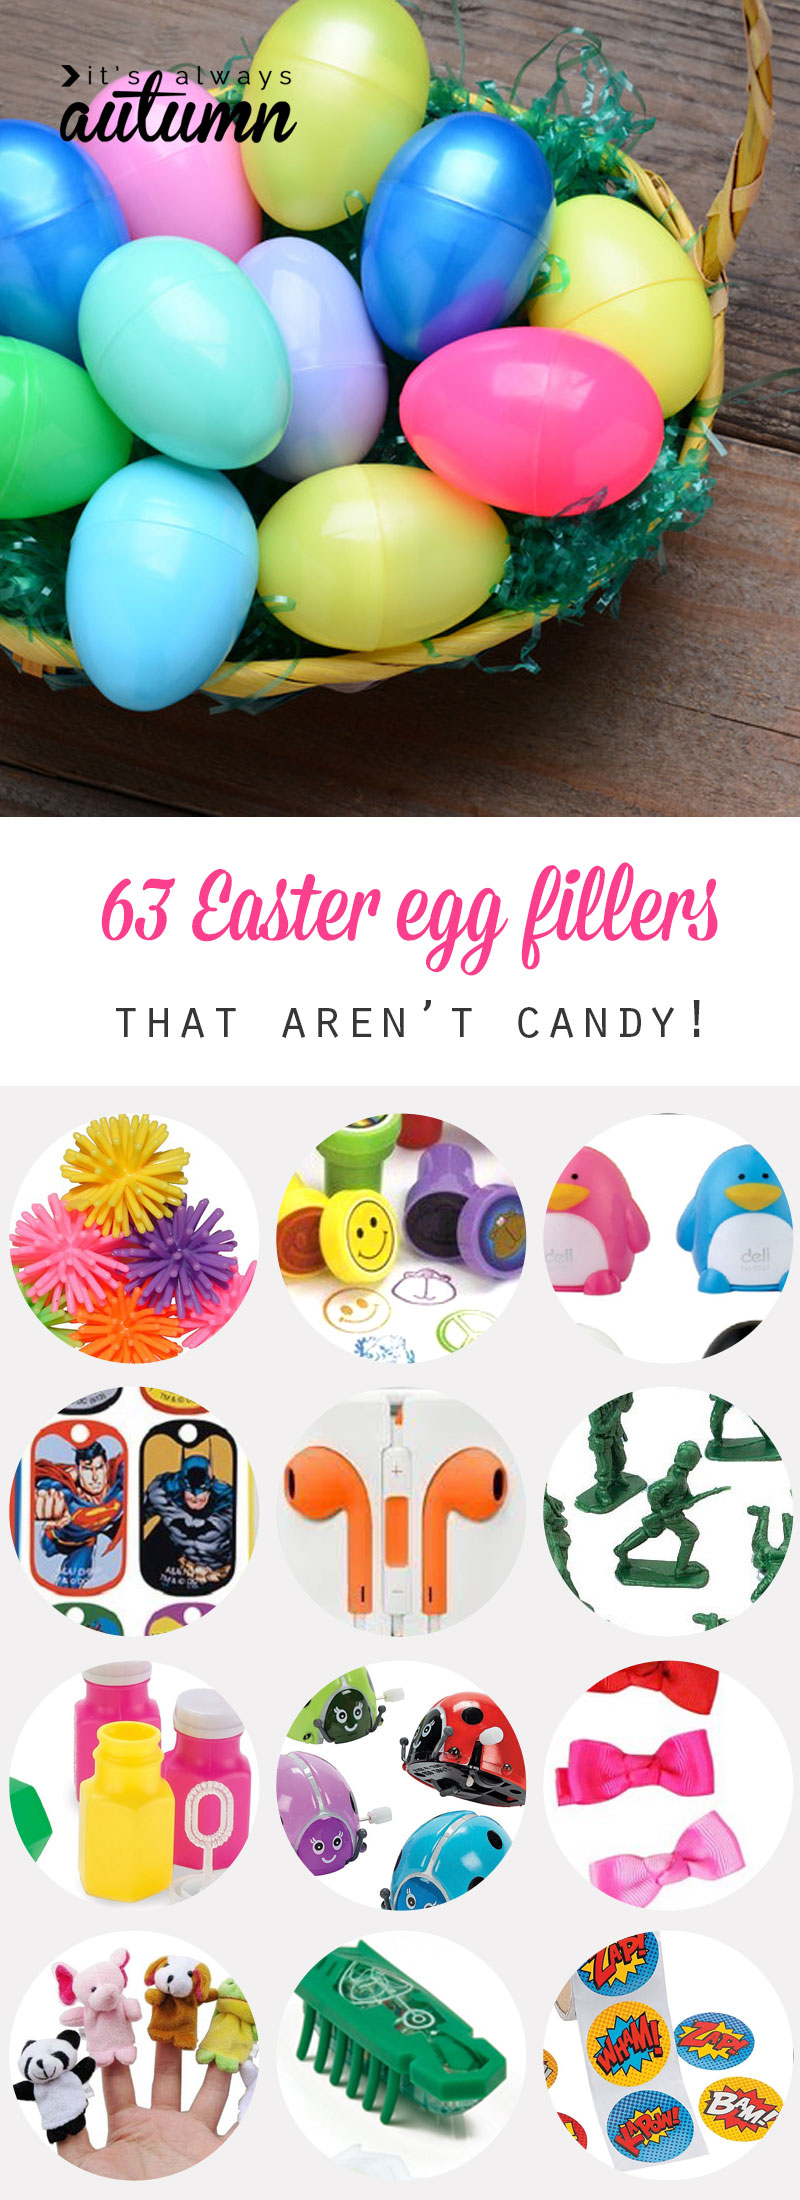 easter-egg-fillers-that-aren't-candy-no-food-non-candy-stuff-to-put-in-eggs-kids-pinnable